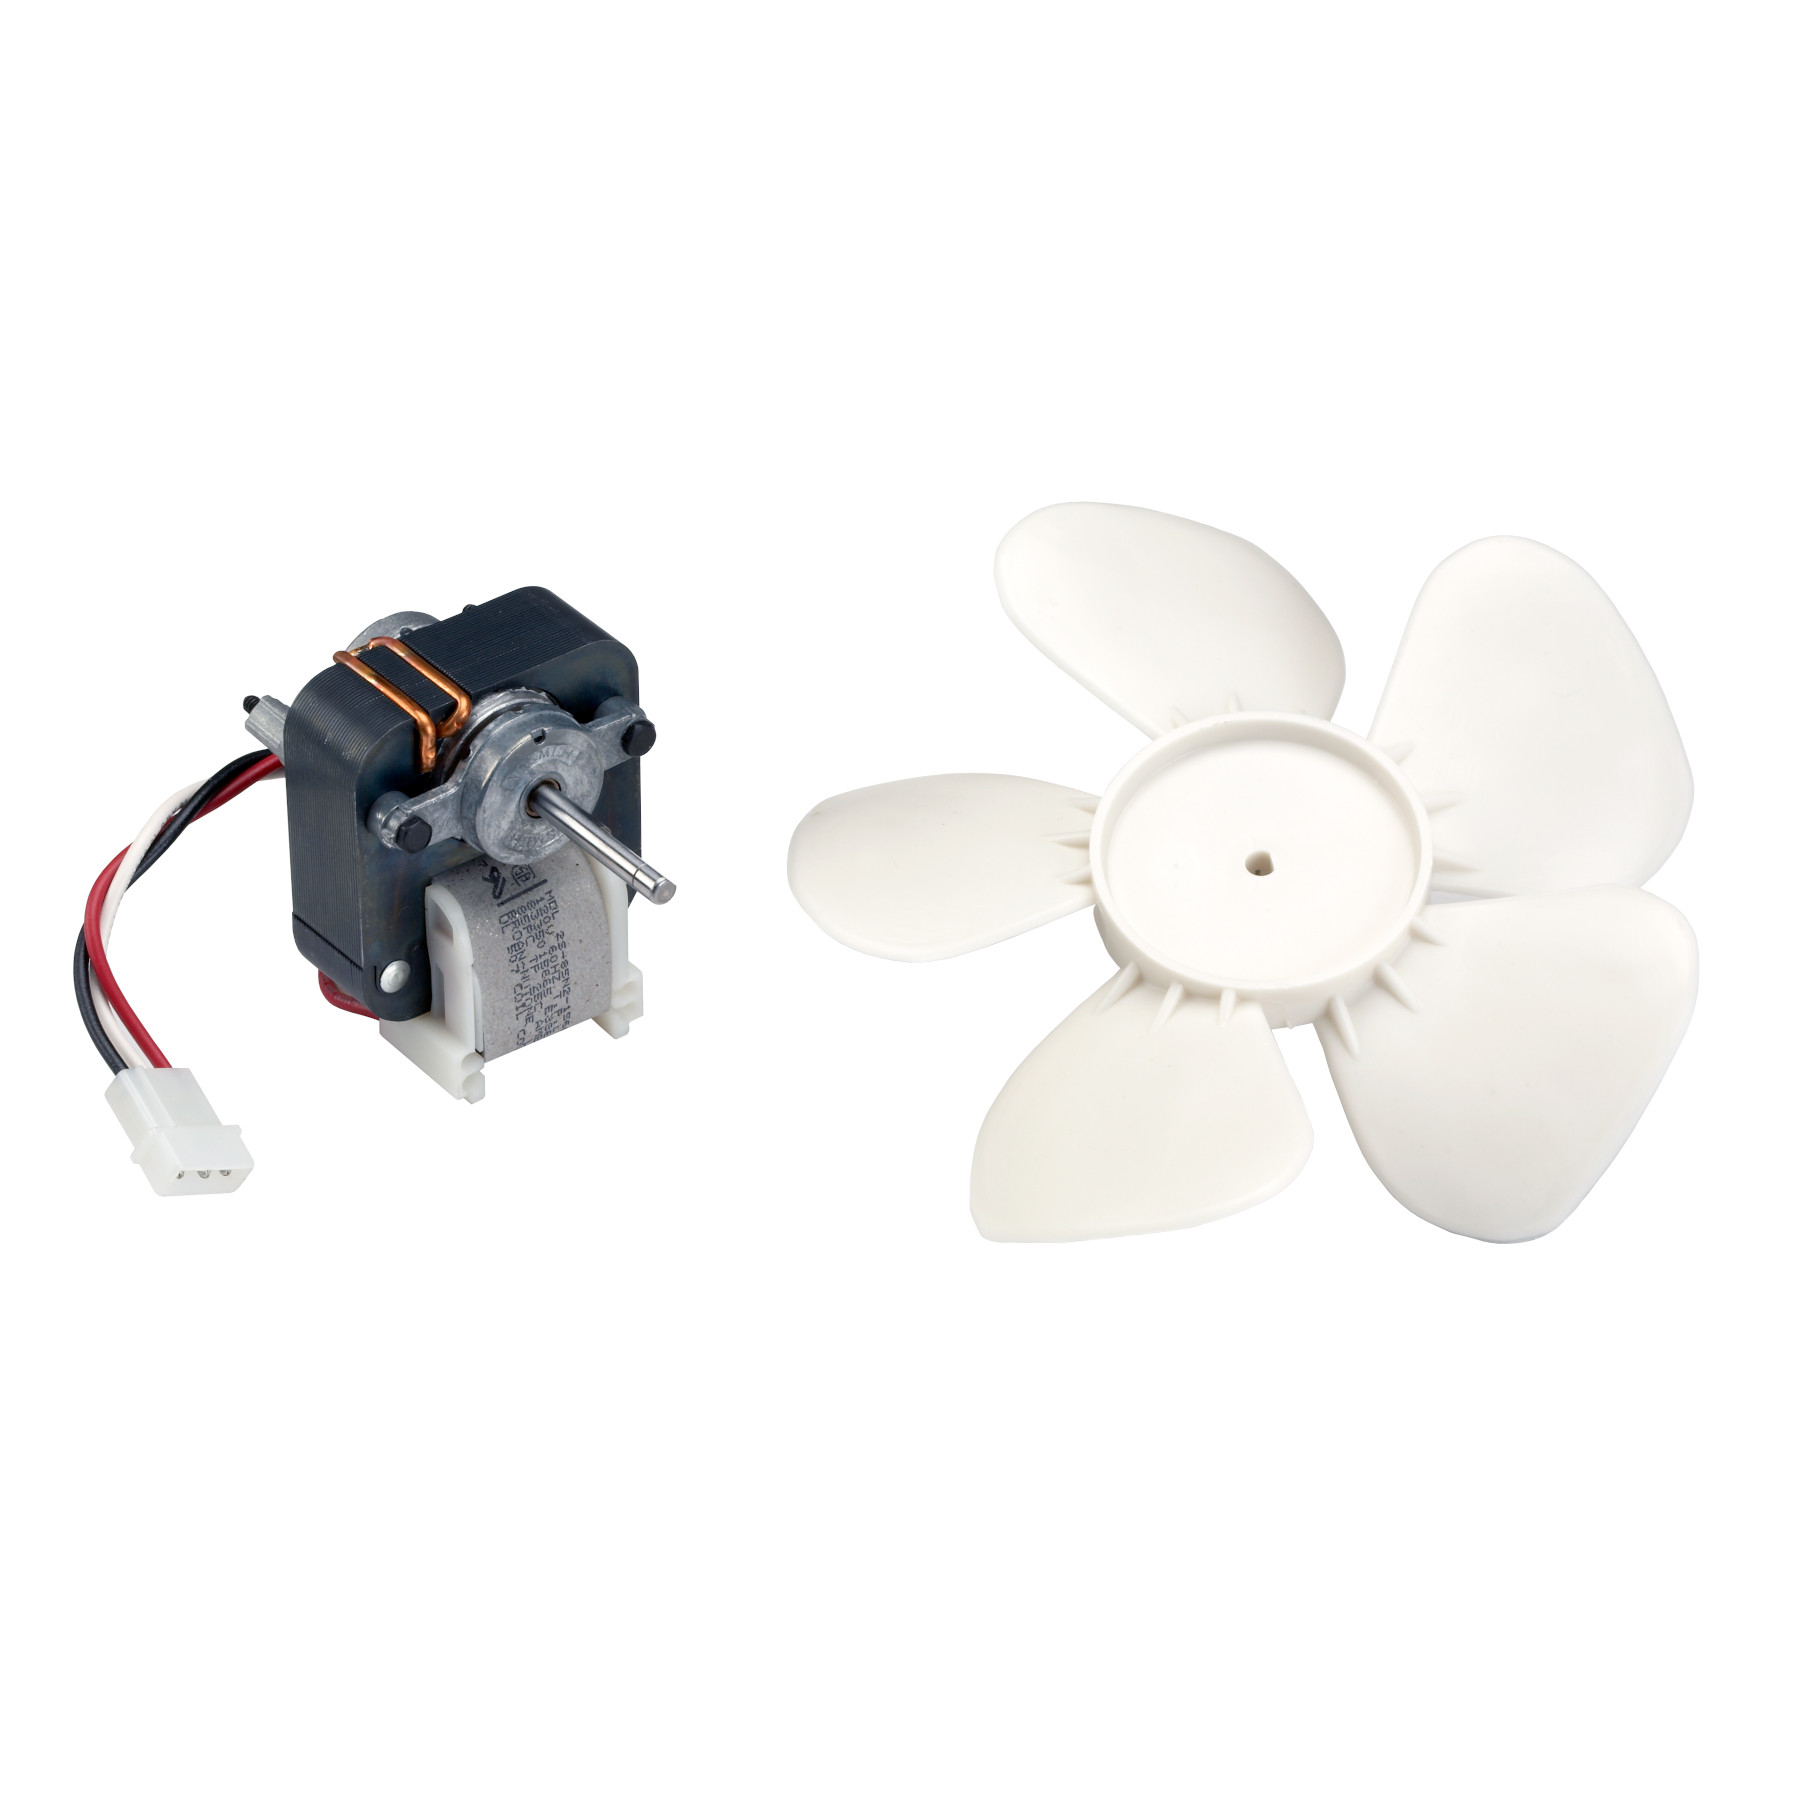 Motor Blade for Select NuTone® Range Hoods